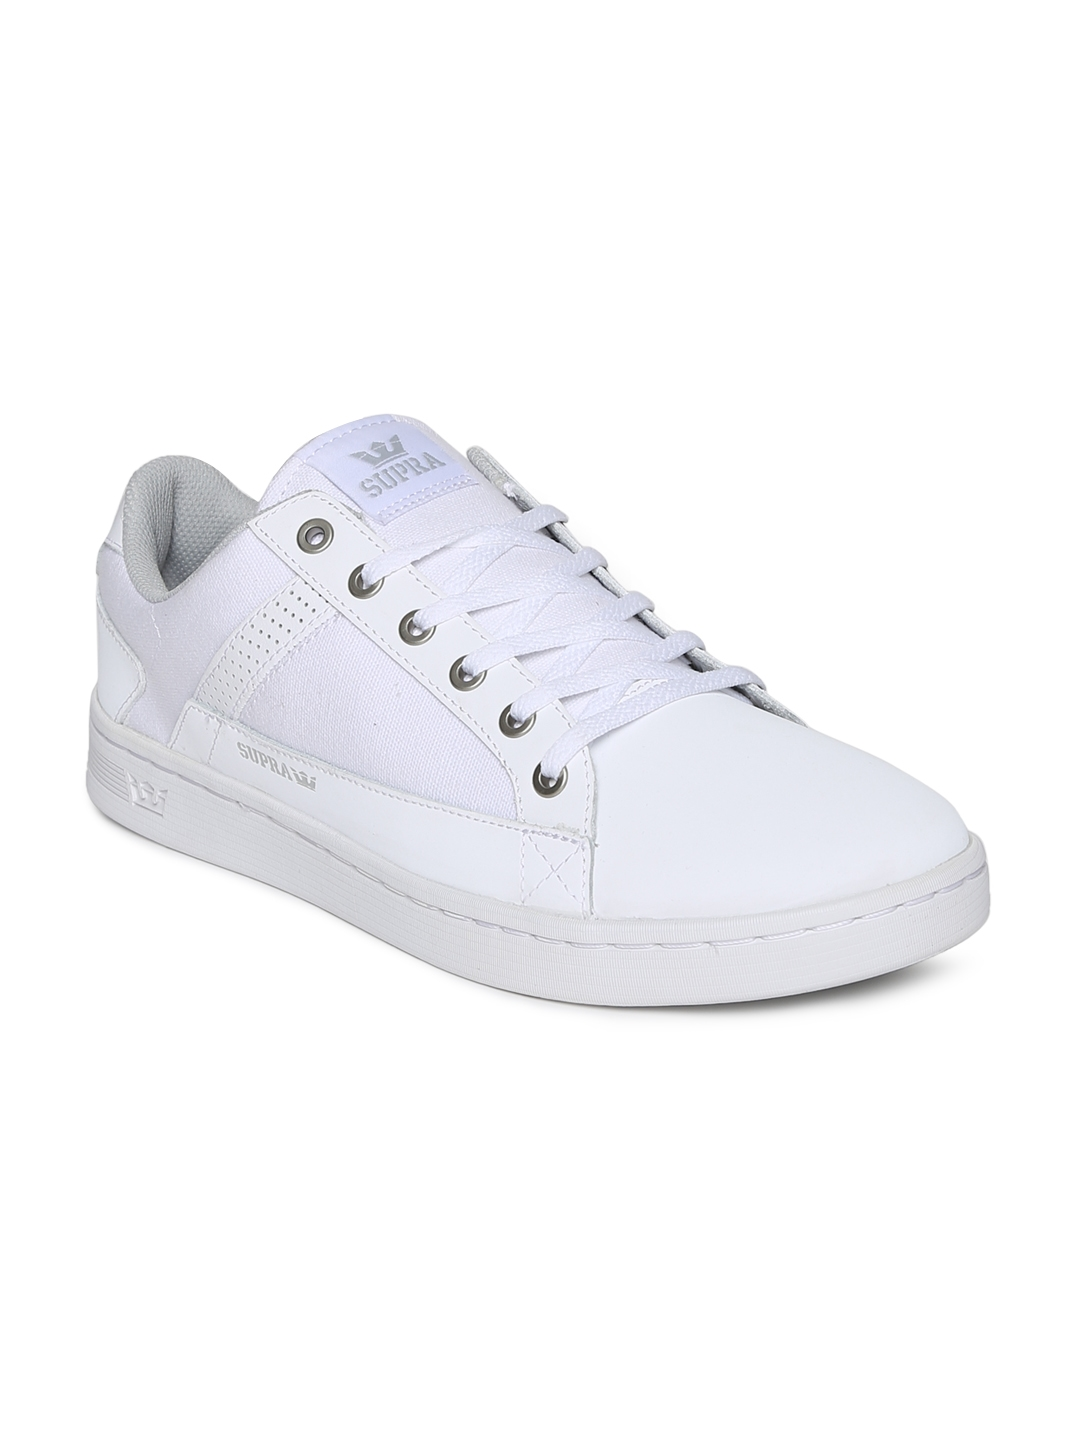 17a68eb171ad Buy Supra Men White WESTLAKE Sneakers - Casual Shoes for Men 2248786 ...